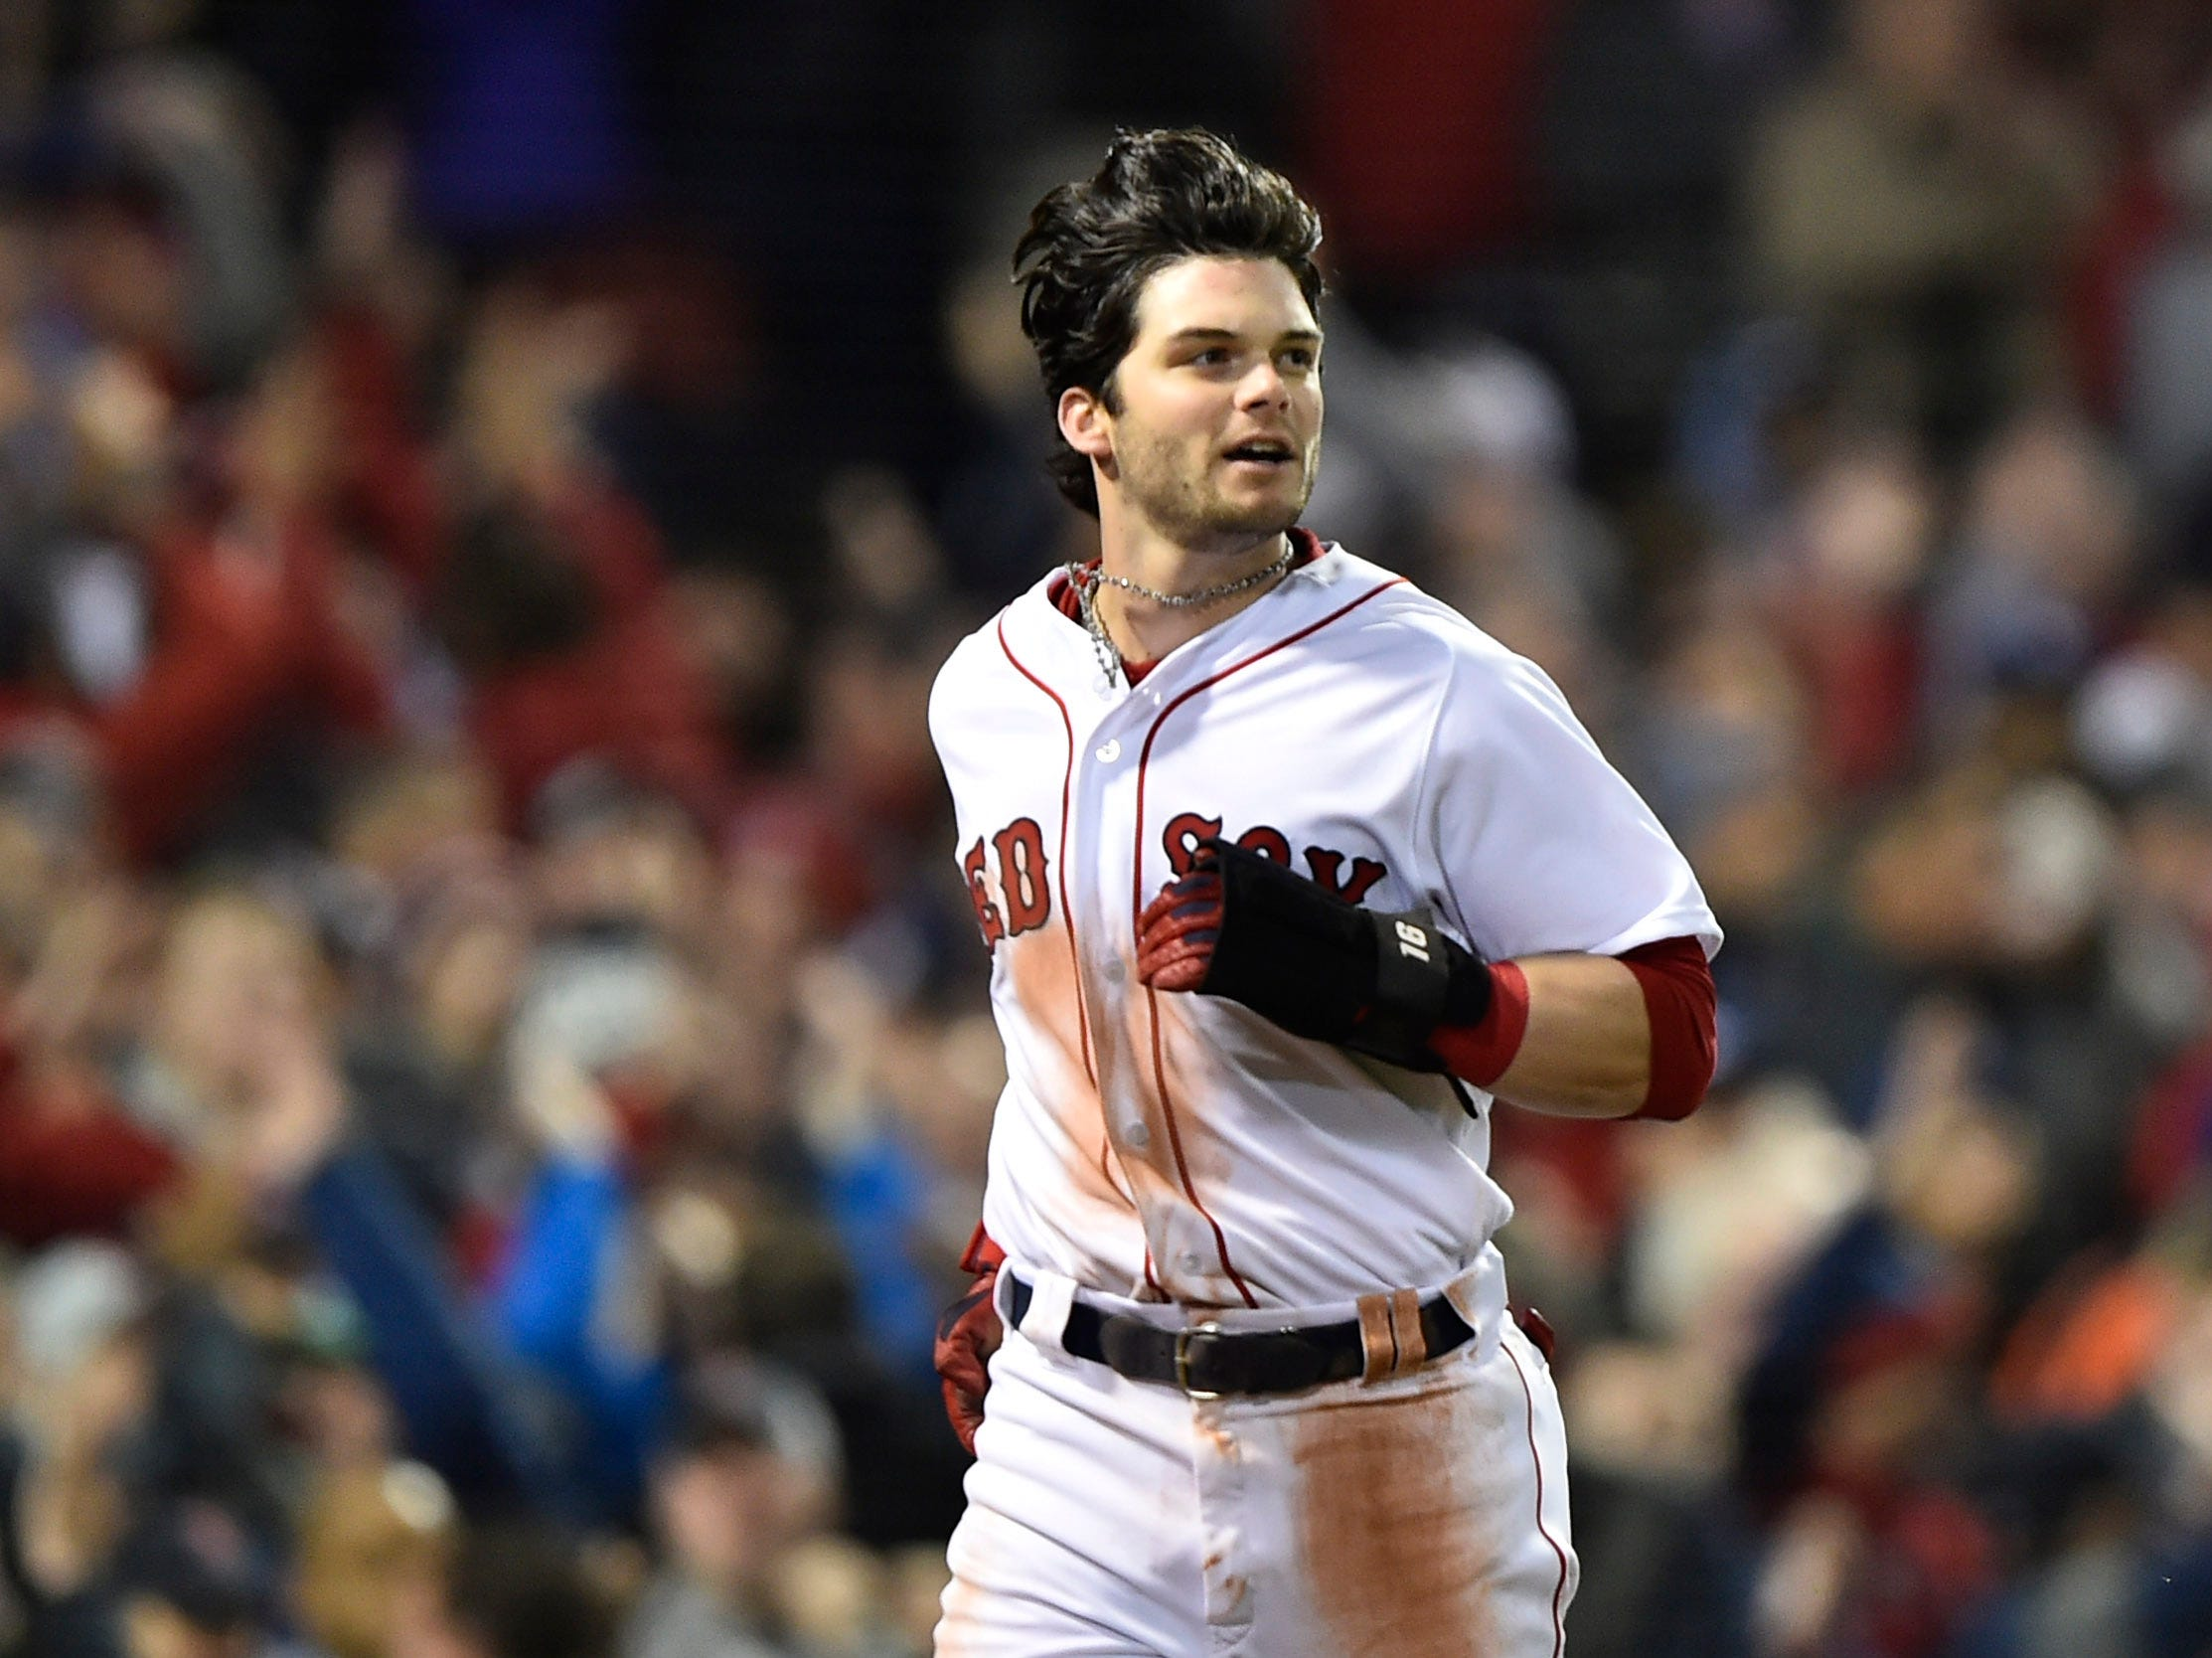 Game 1 at Fenway Park: Andrew Benintendi reacts after scoring a run in the first inning.